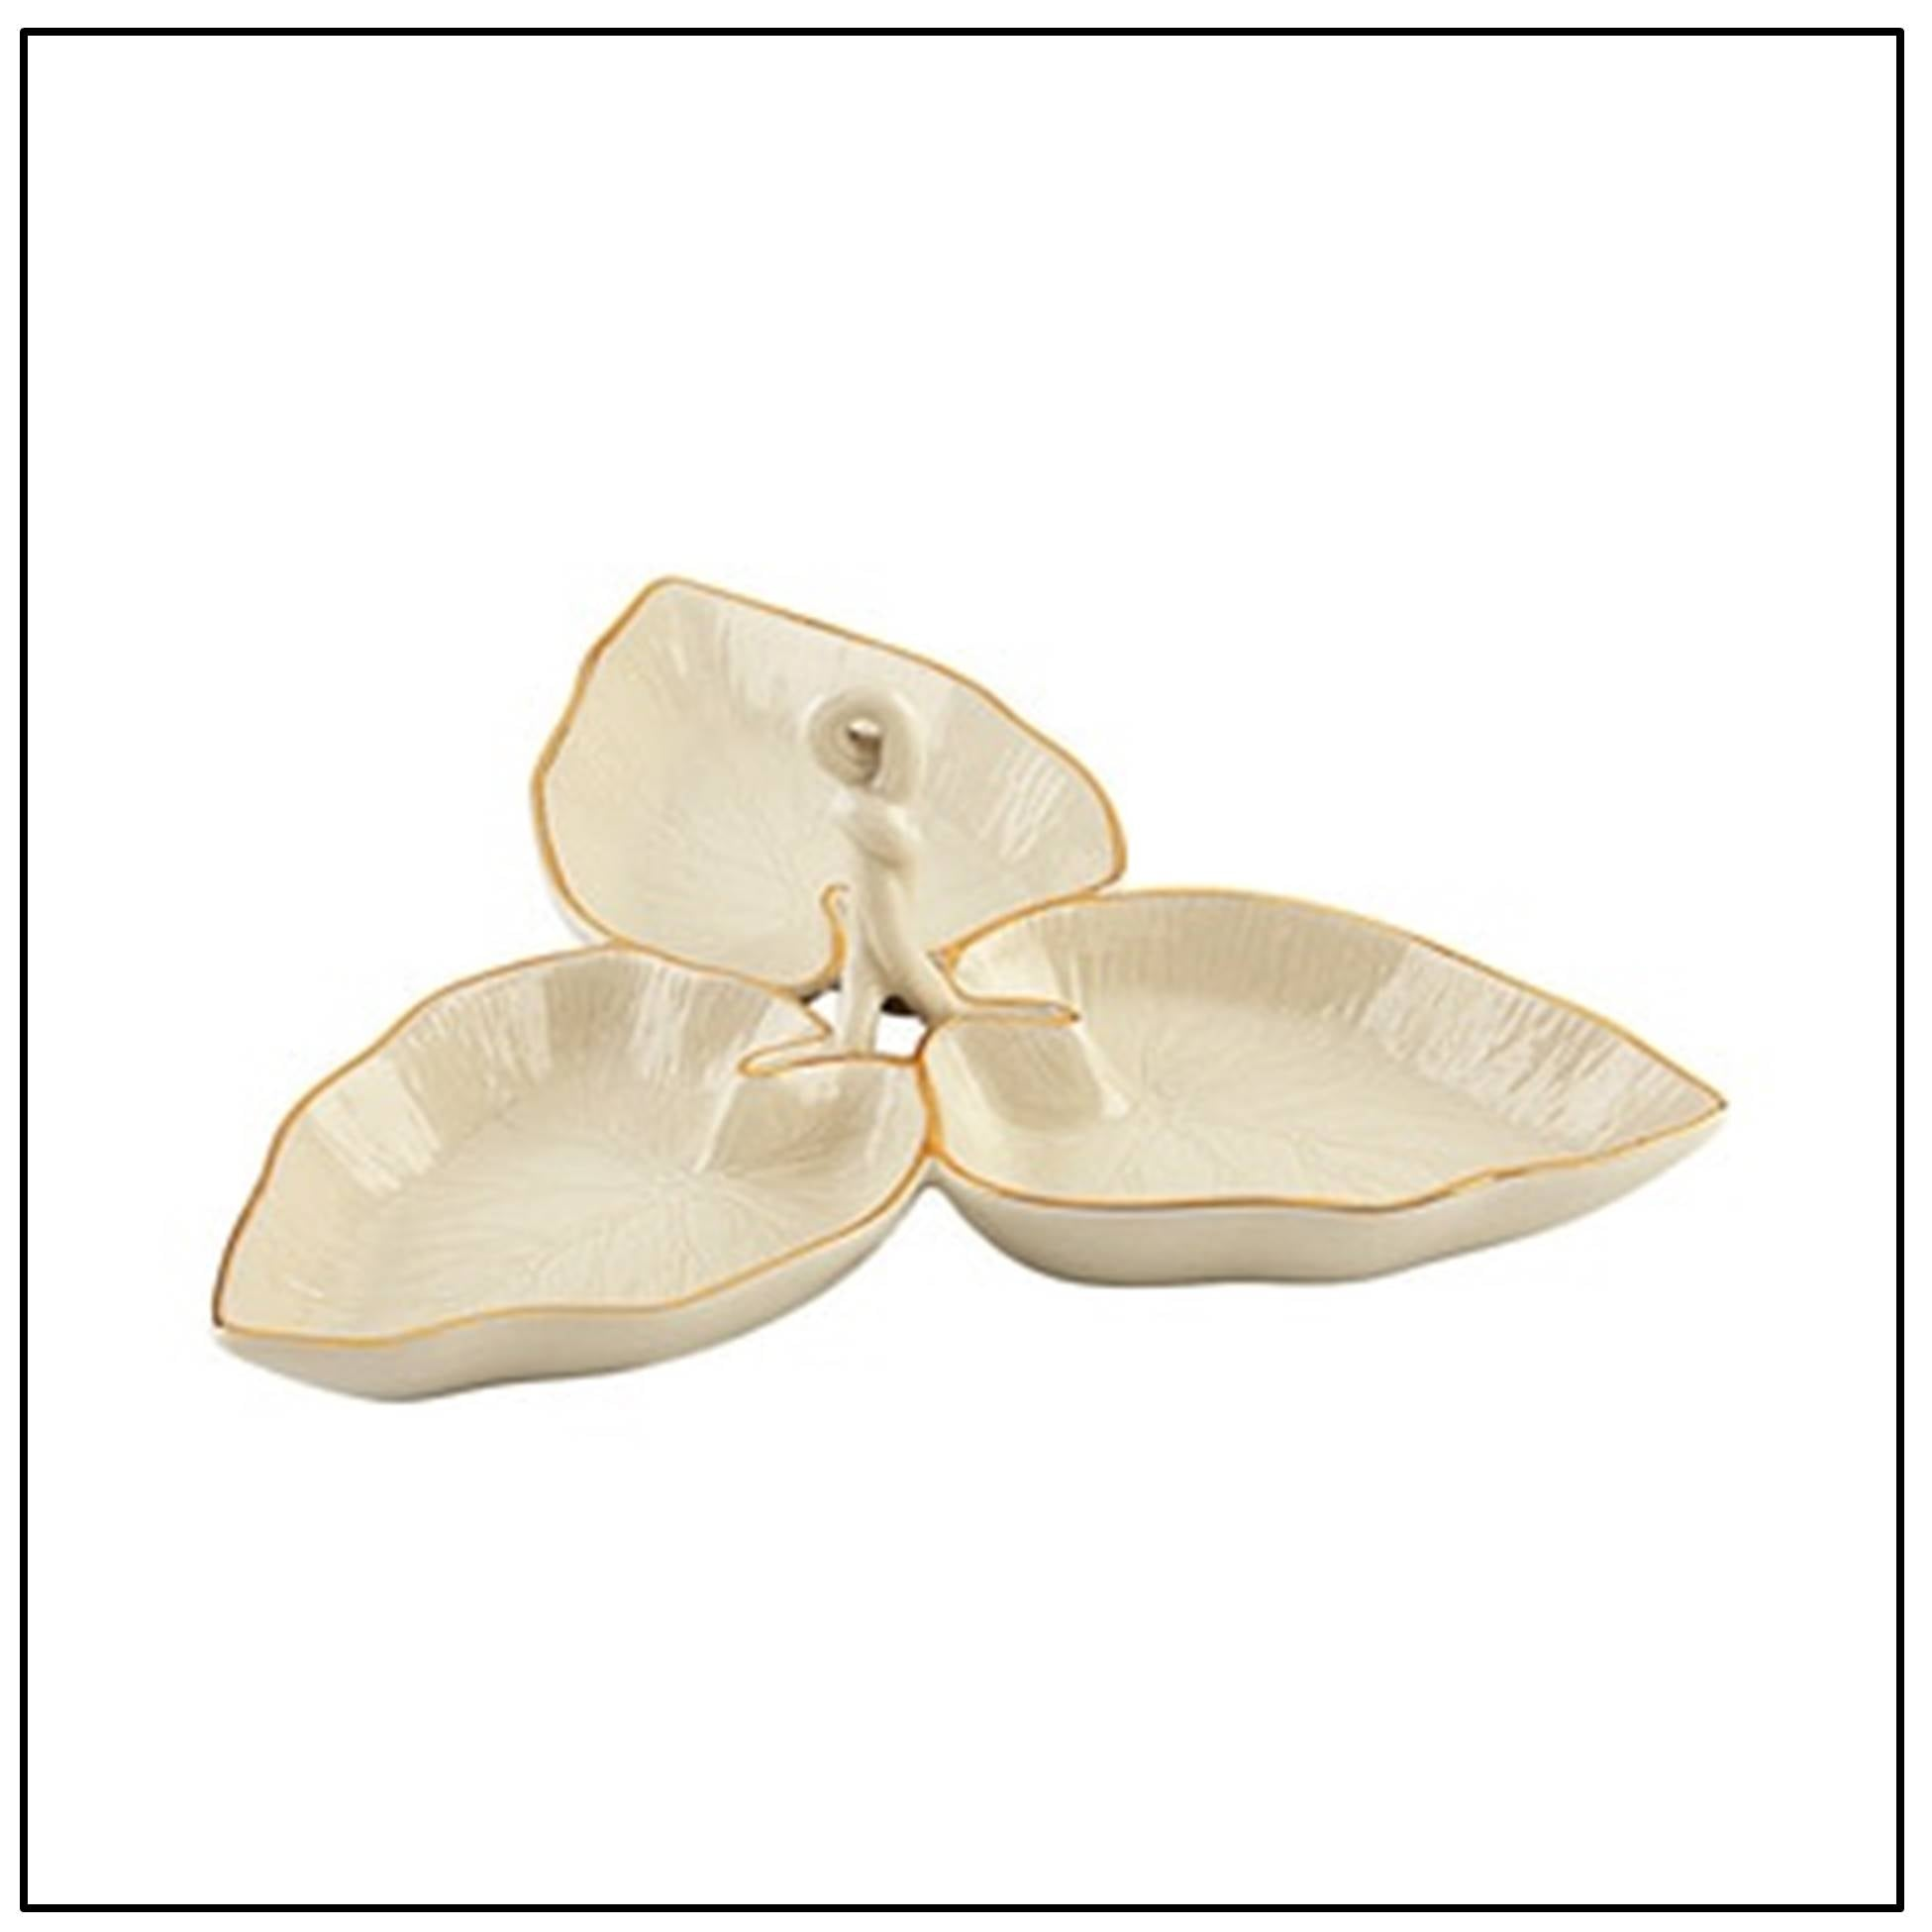 Eternal Leaf Sectional Dish